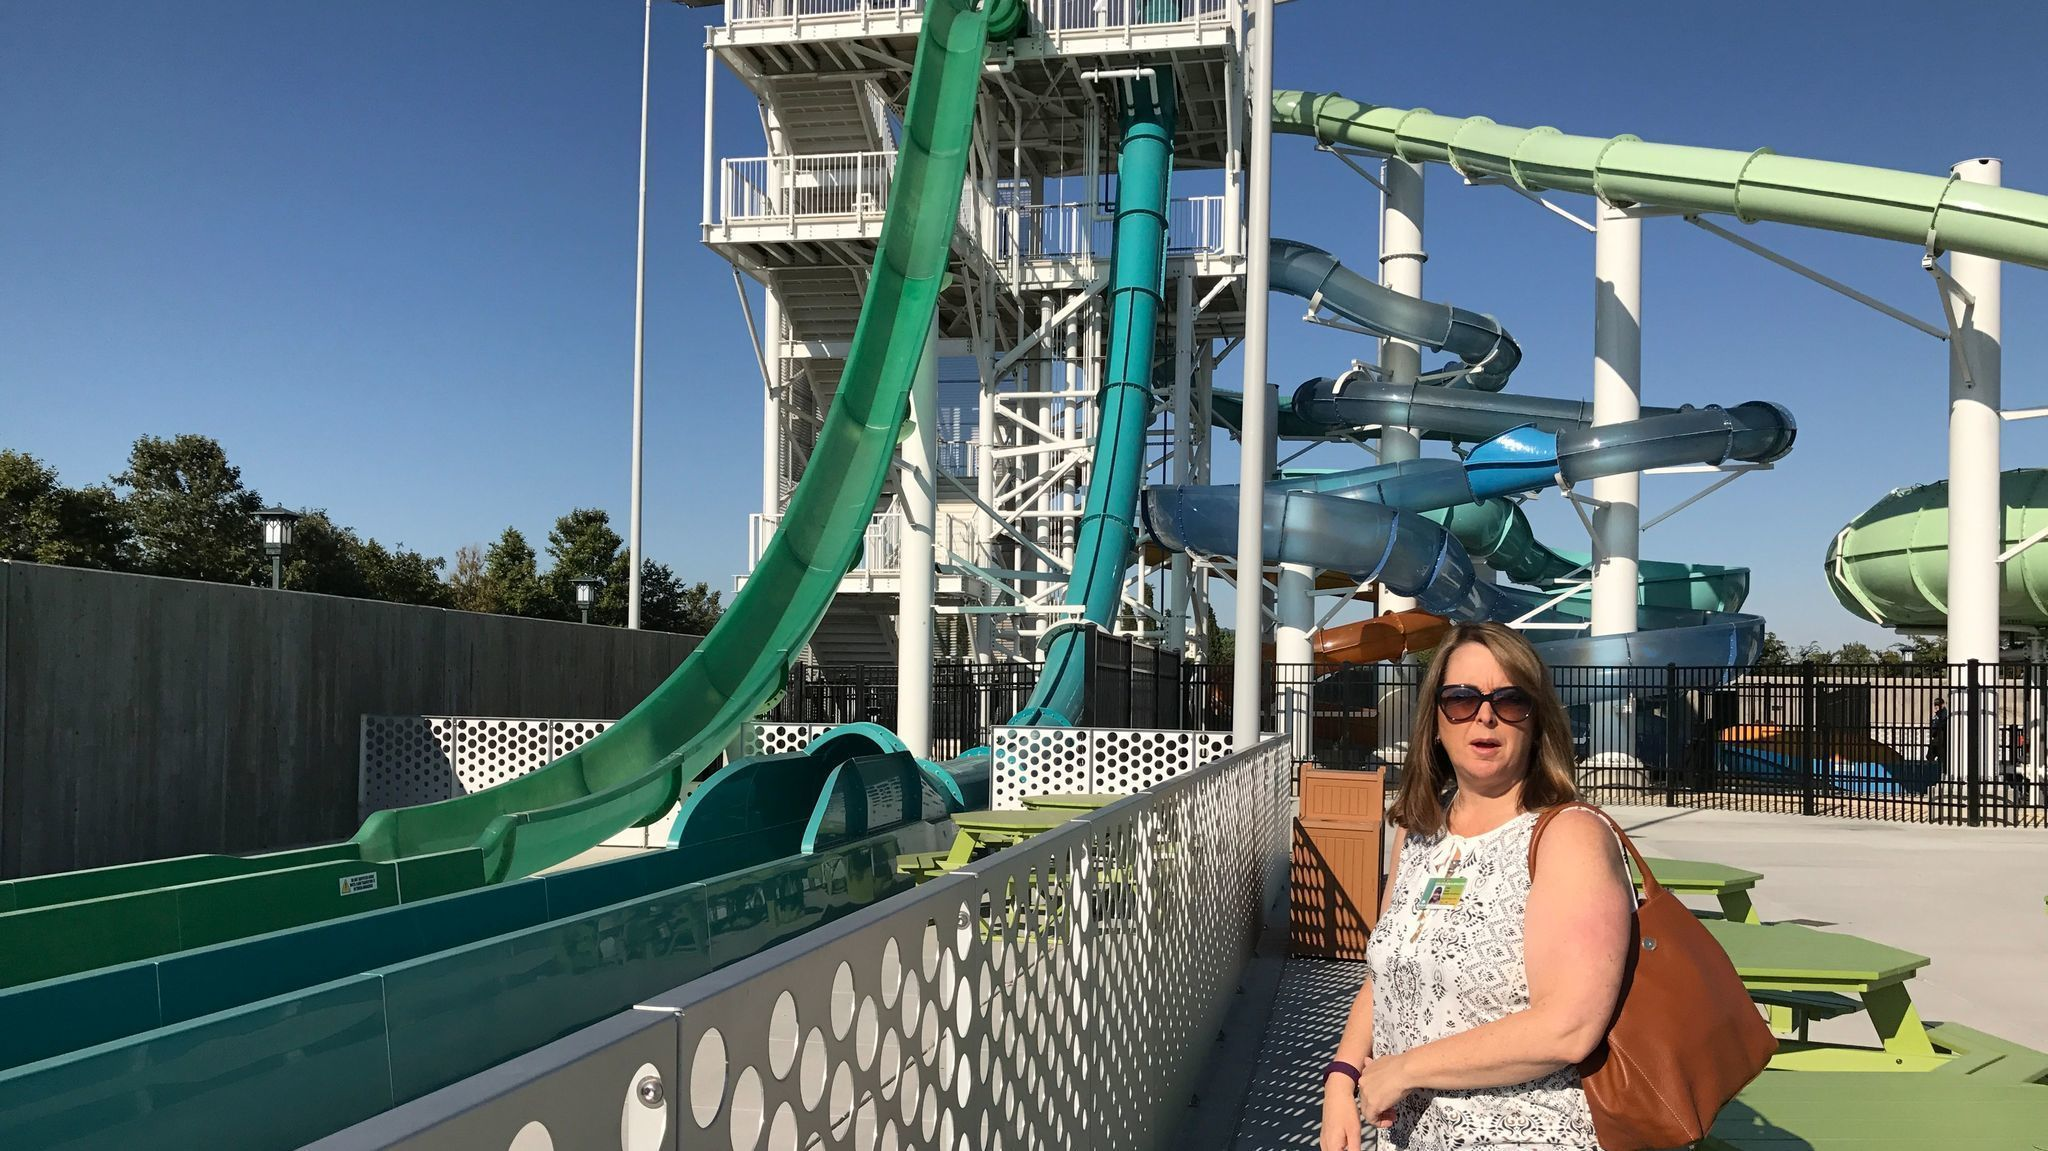 A Bay Area Town Criticized For Building A Water Park